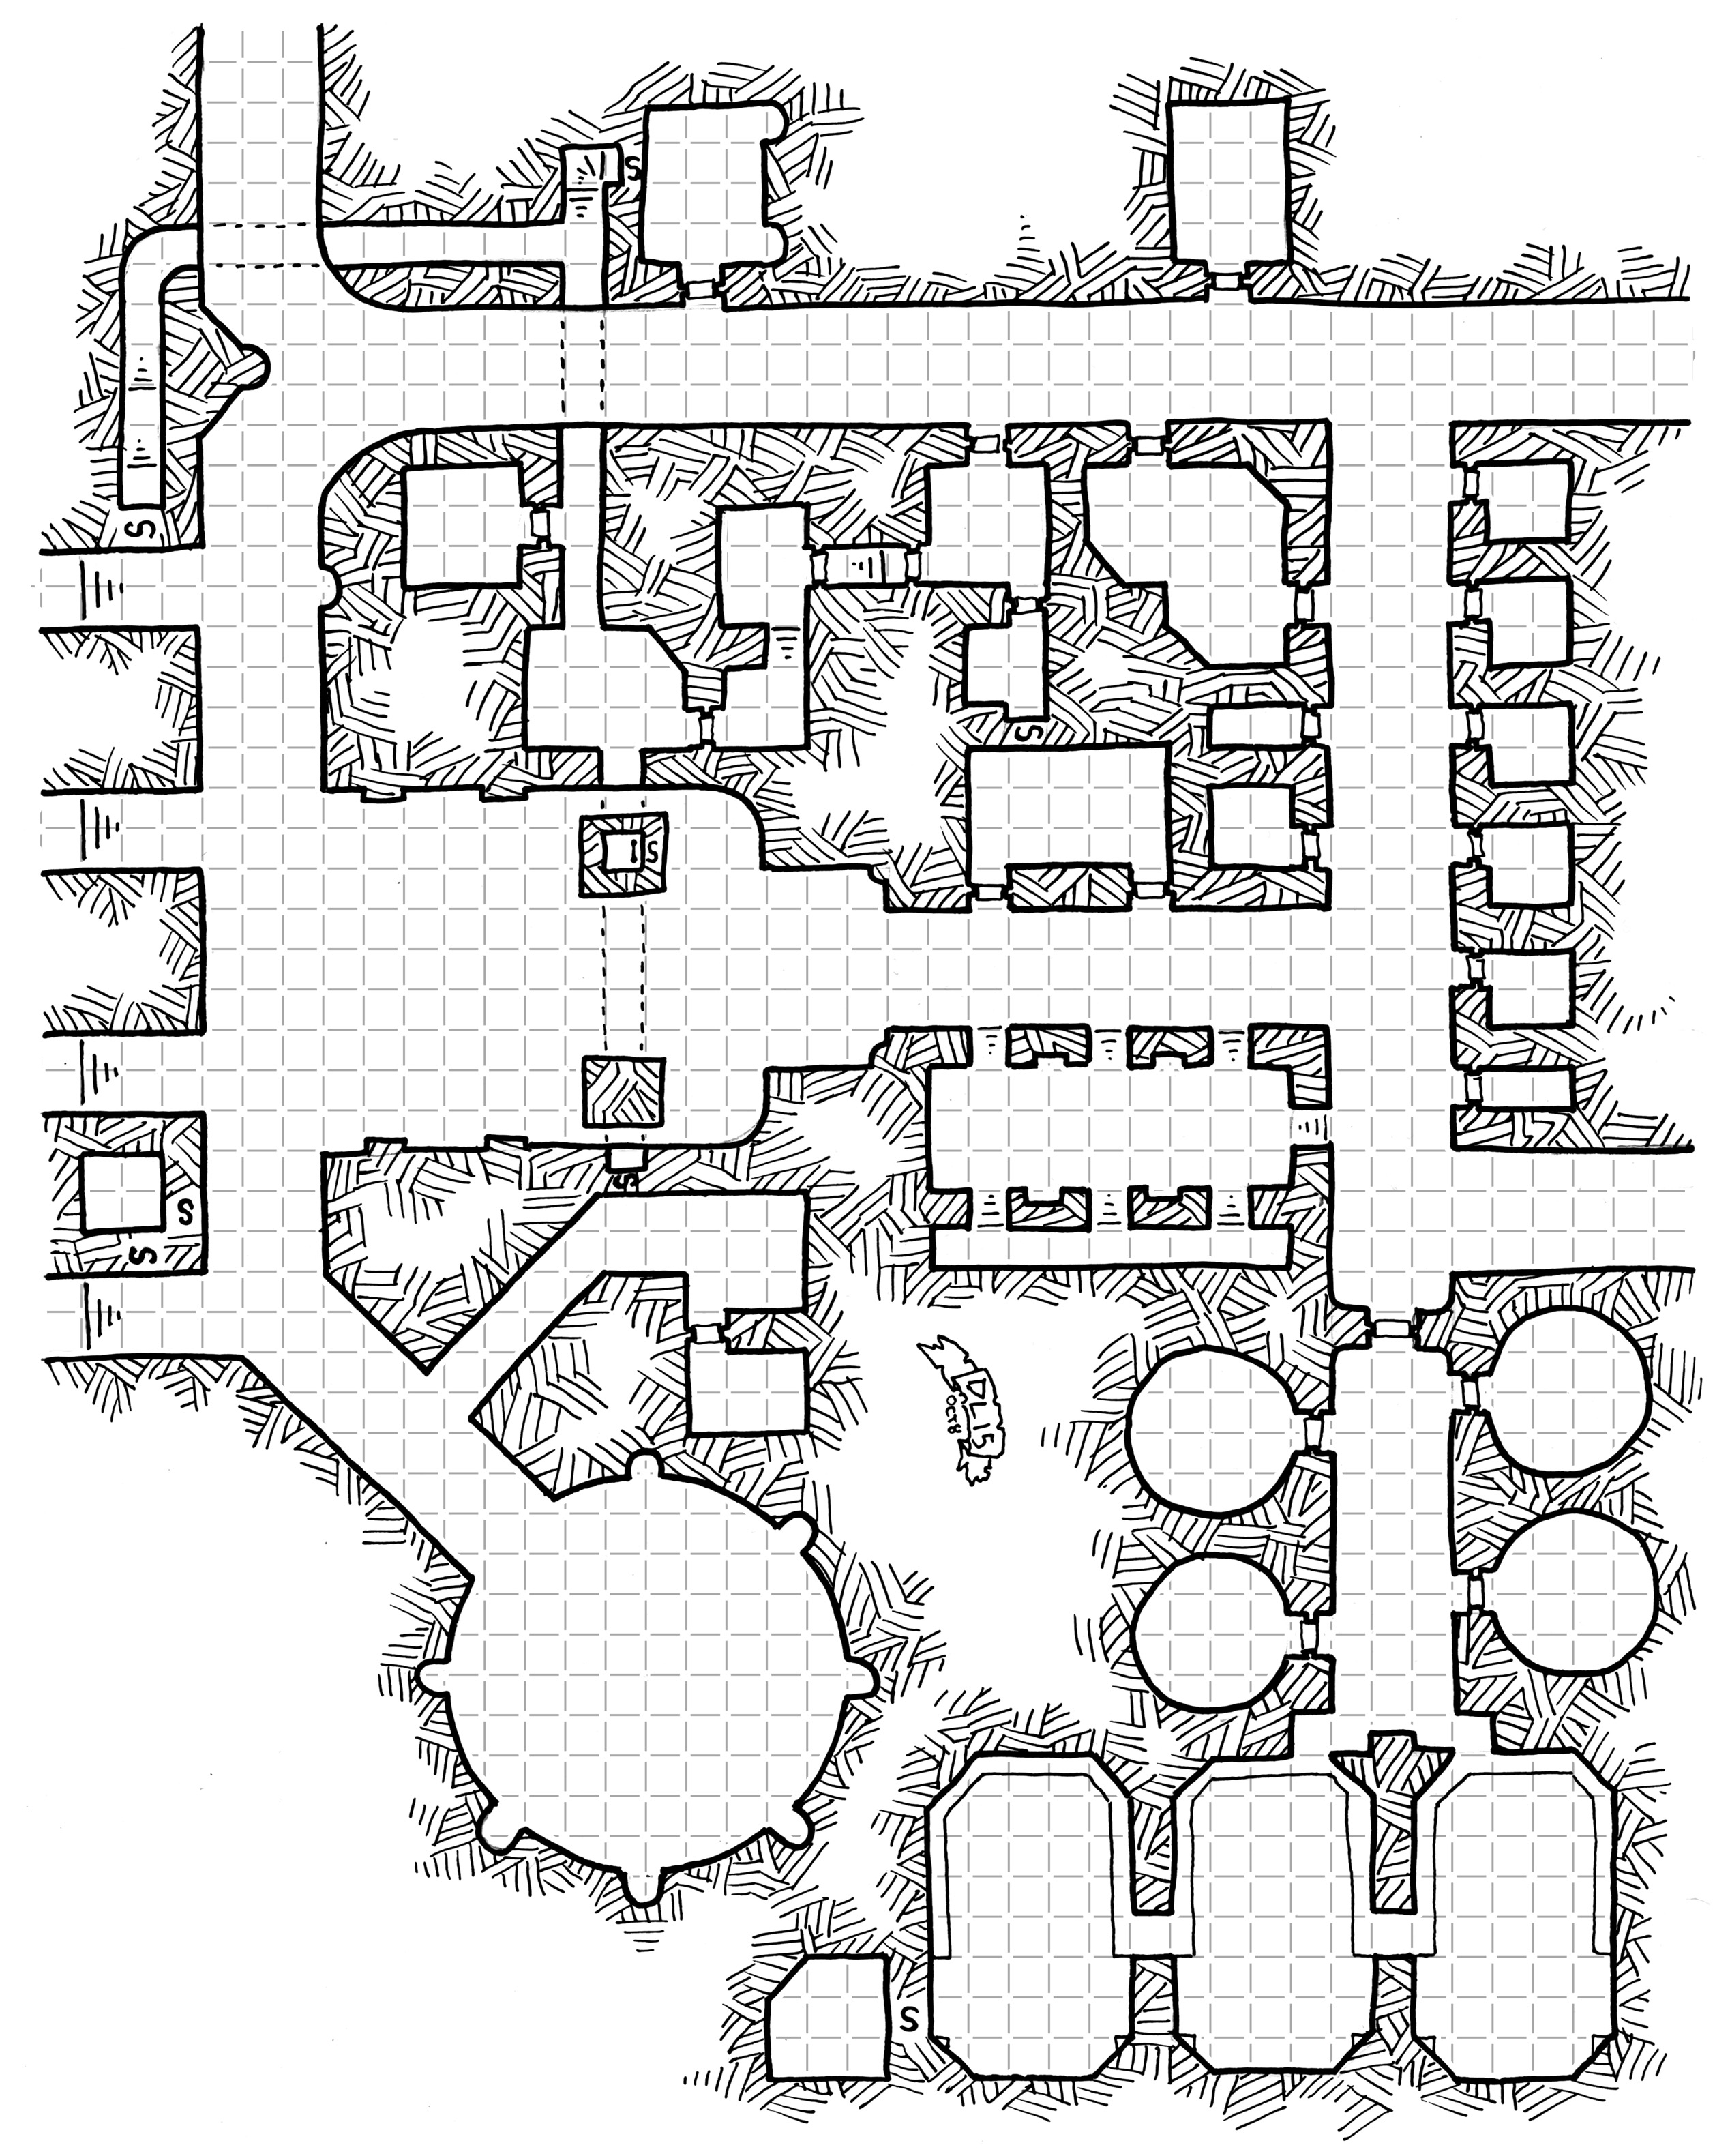 Dungeon – Dyson's Dodecahedron